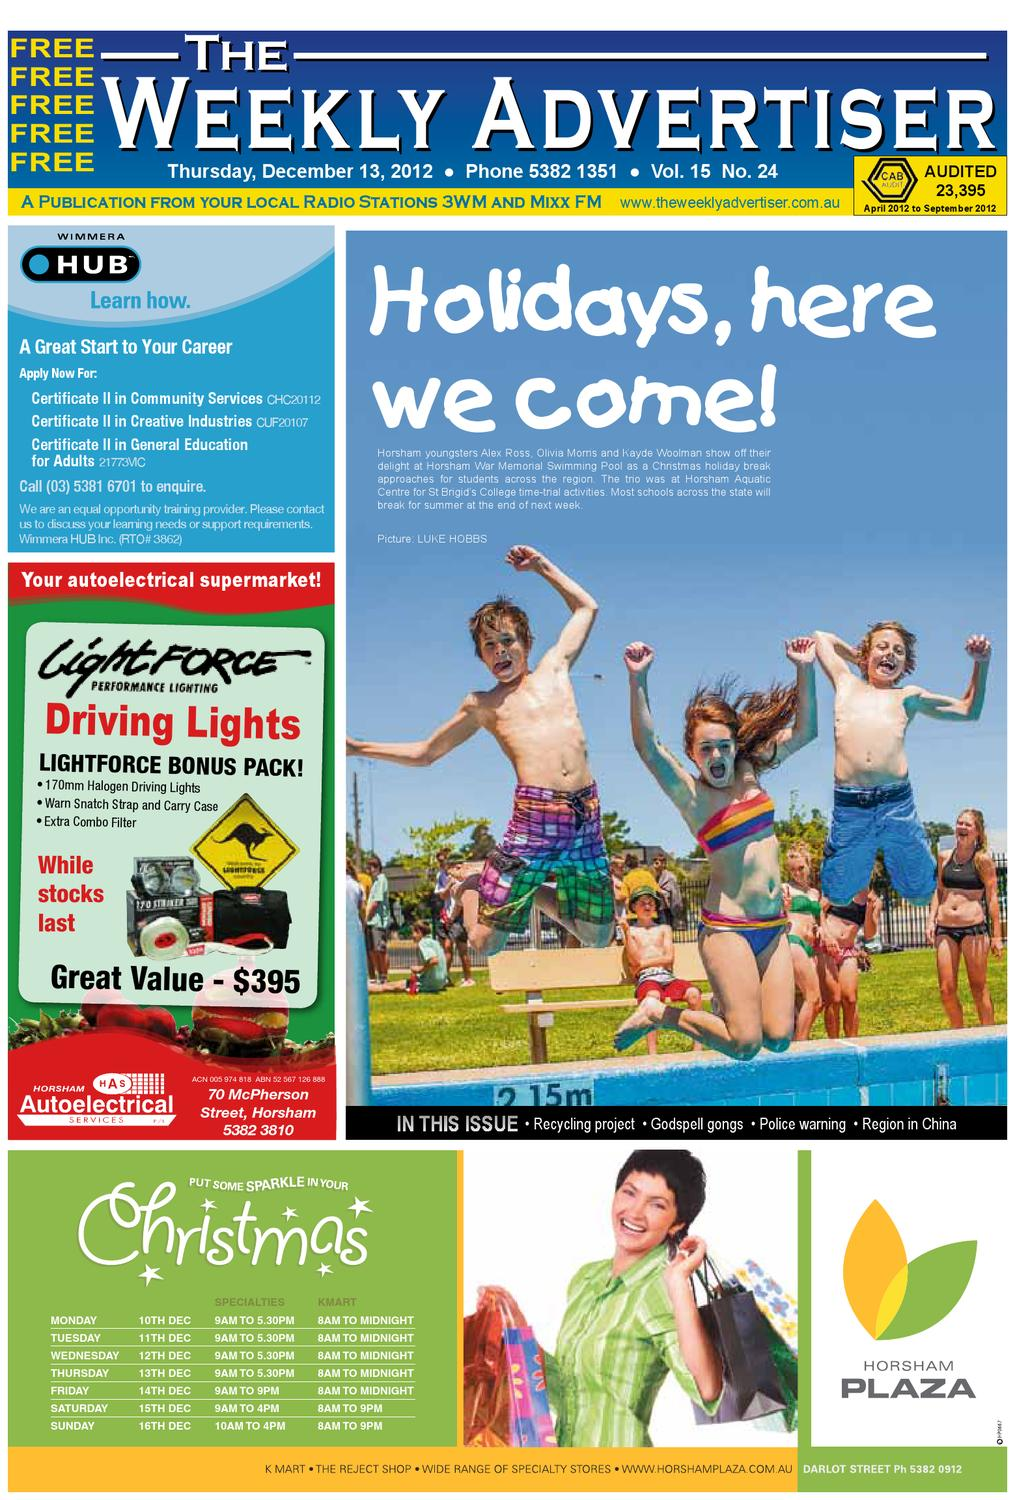 The Weekly Advertiser Thursday December 13 Edition By Suzuki King Quad 750 Fuel Filter Issuu